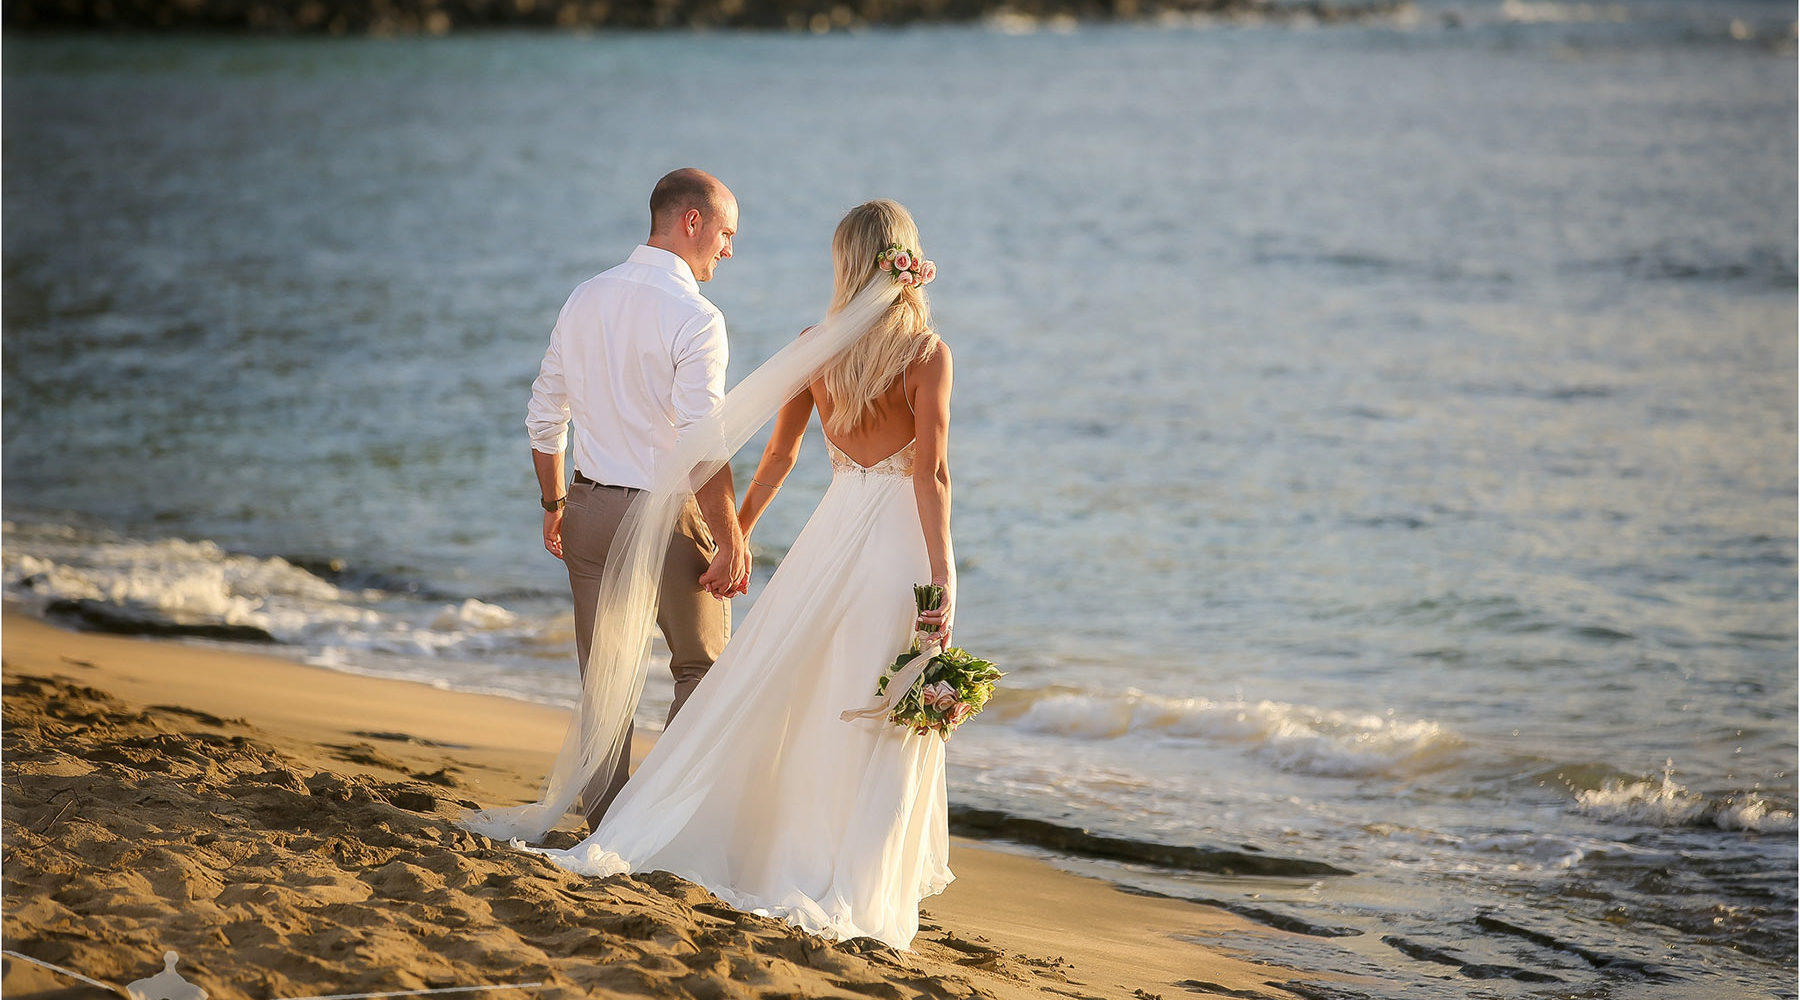 A Beach Wedding on the Island of Kauai.